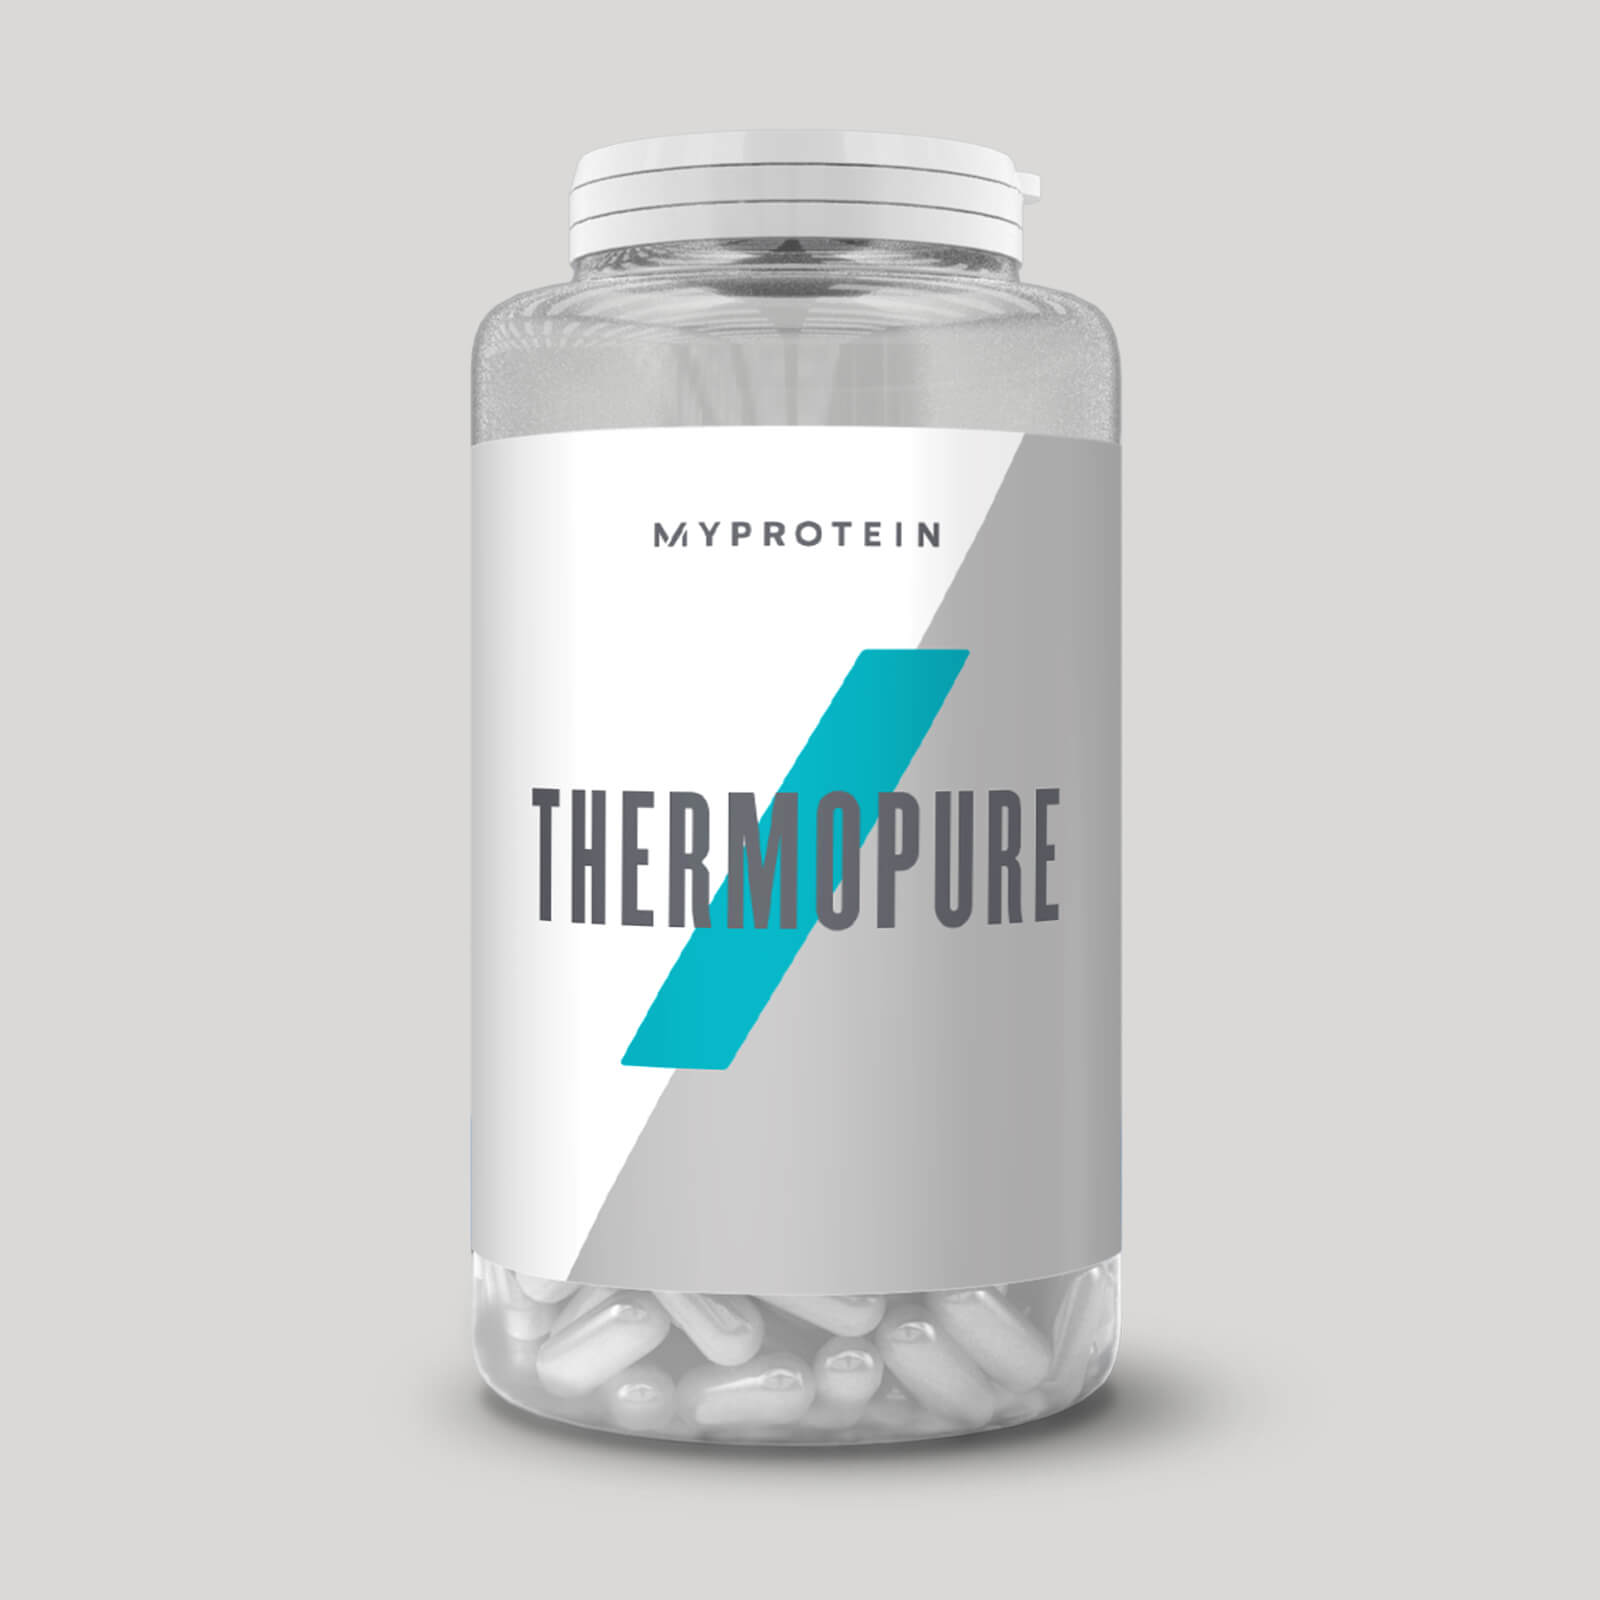 Thermopure